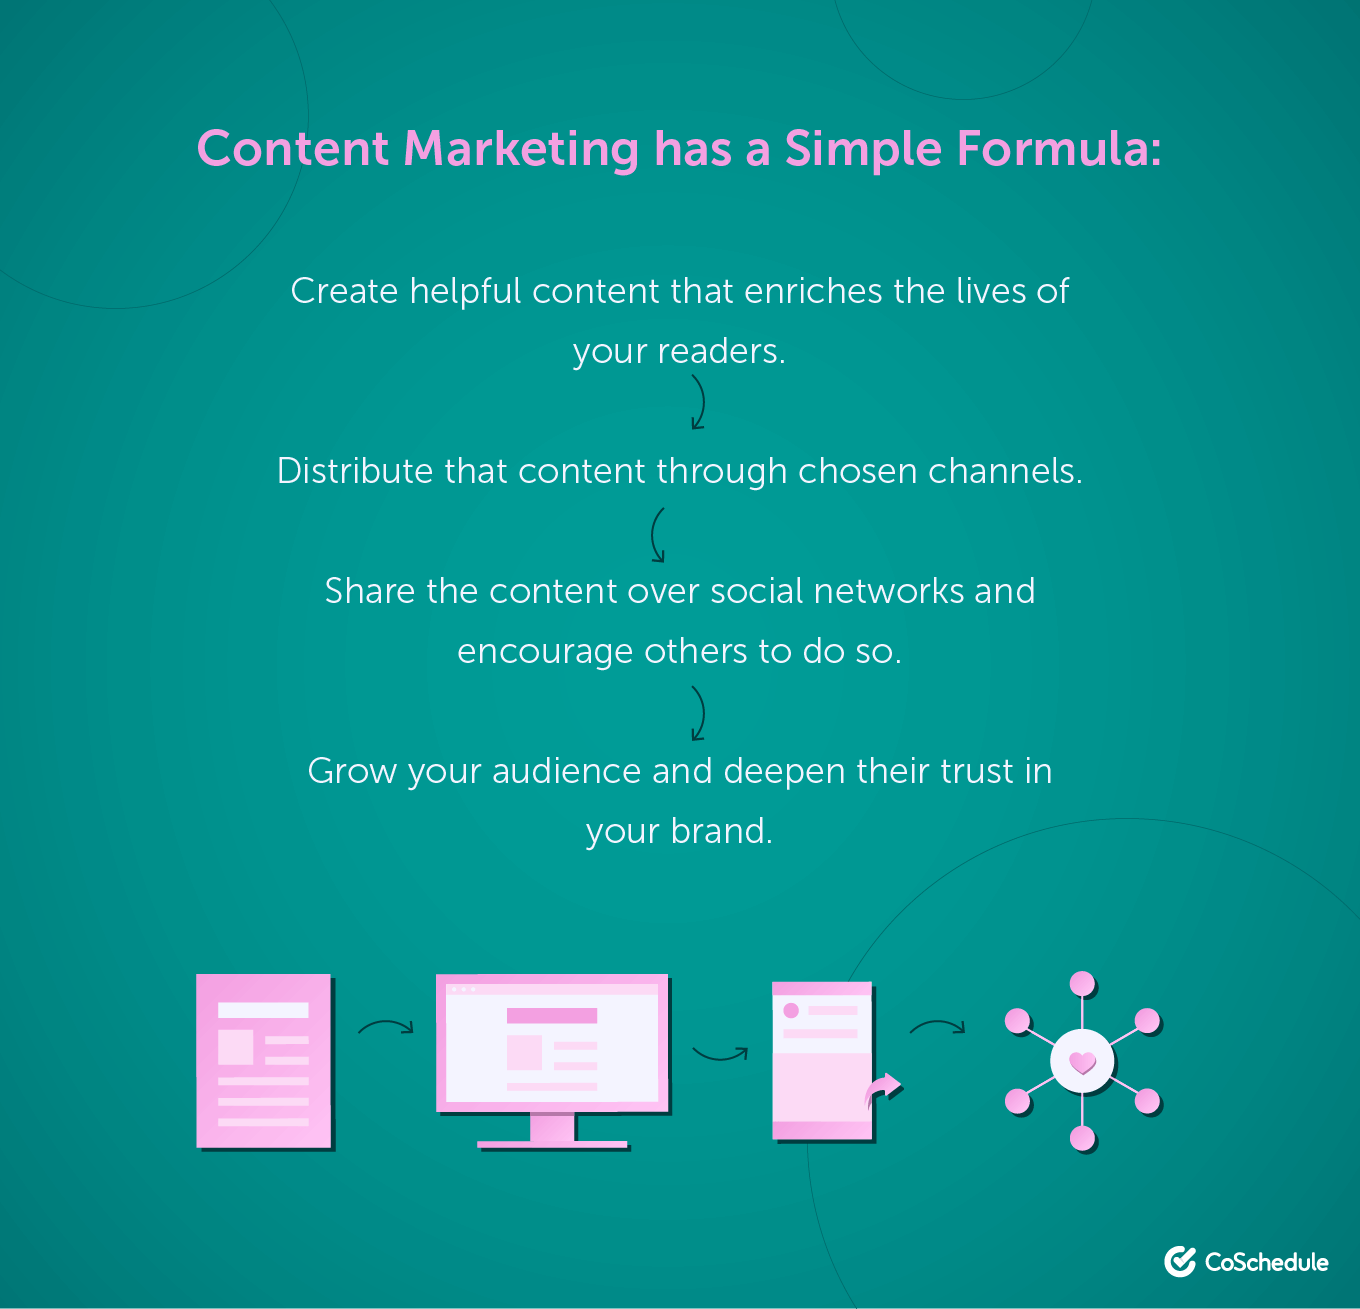 Simple Content Marketing Formula for Small Business